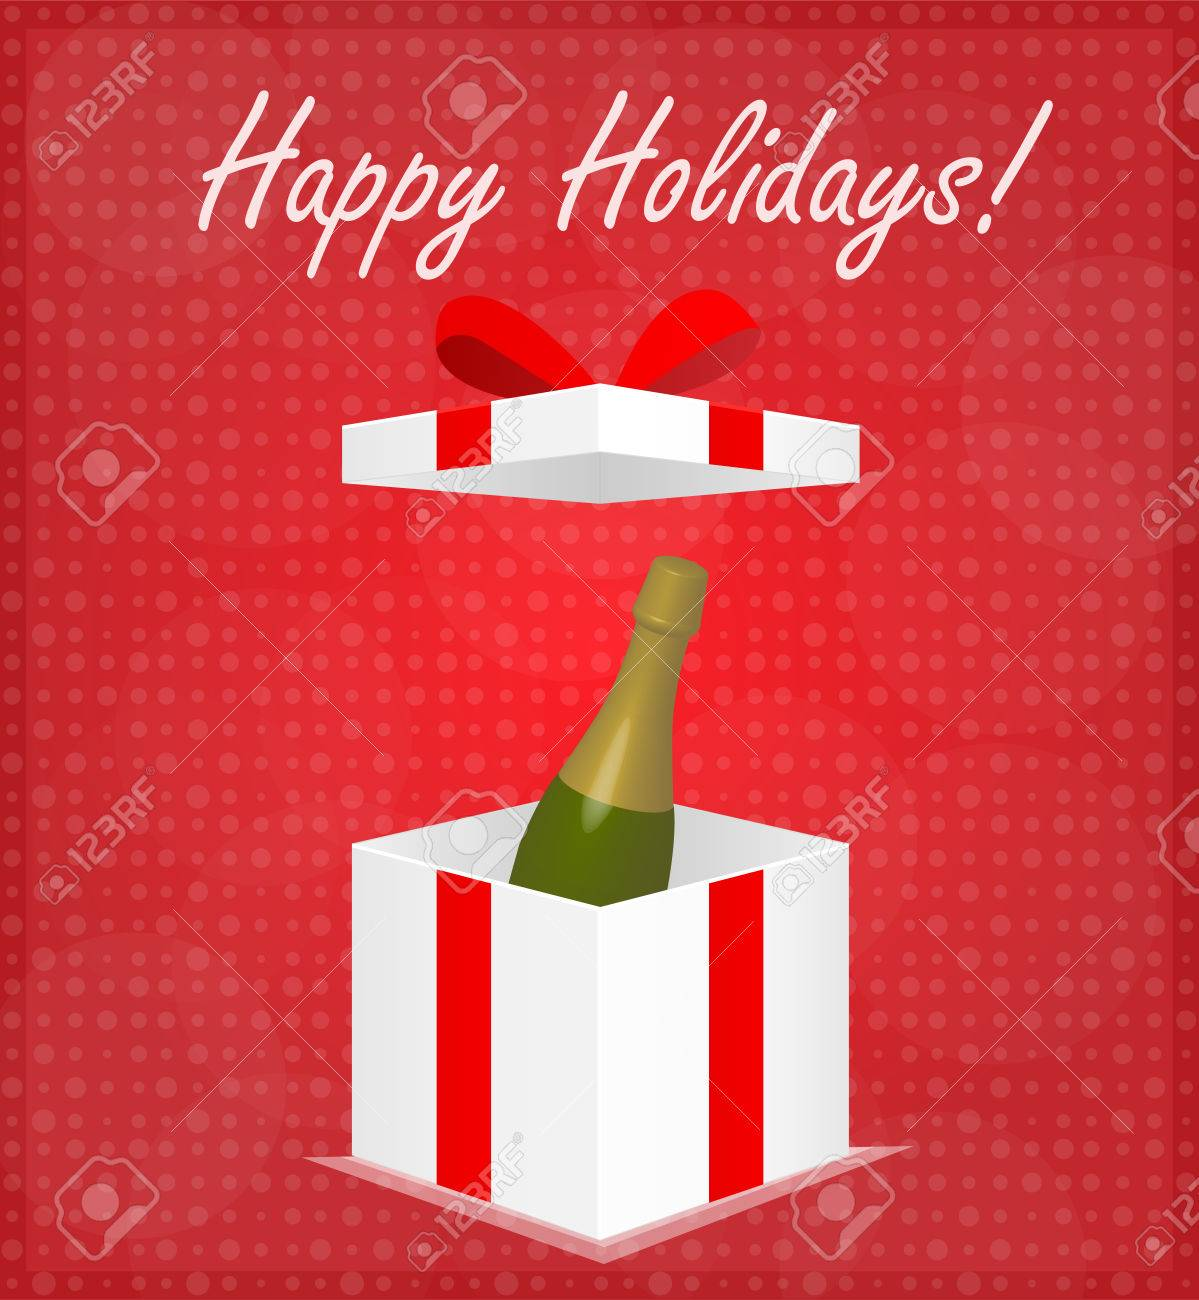 Happy Holidays Greeting Card Gift Box with Champagne Red Background Stock Vector - 24232063